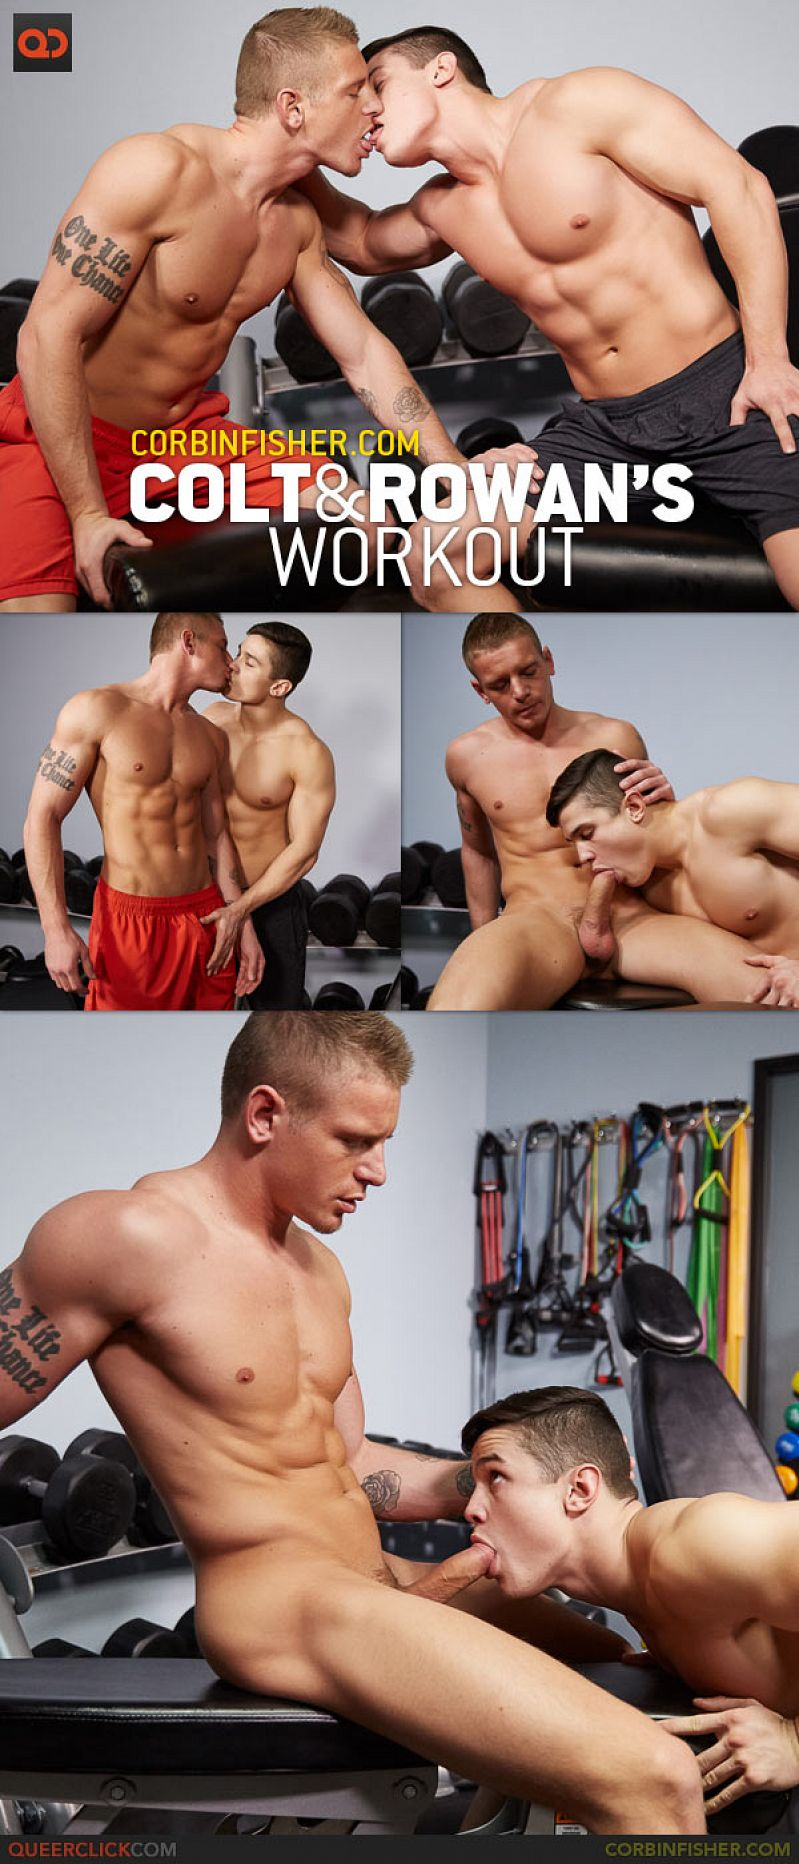 CorbinFisher – Colt and Rowan's Work Out